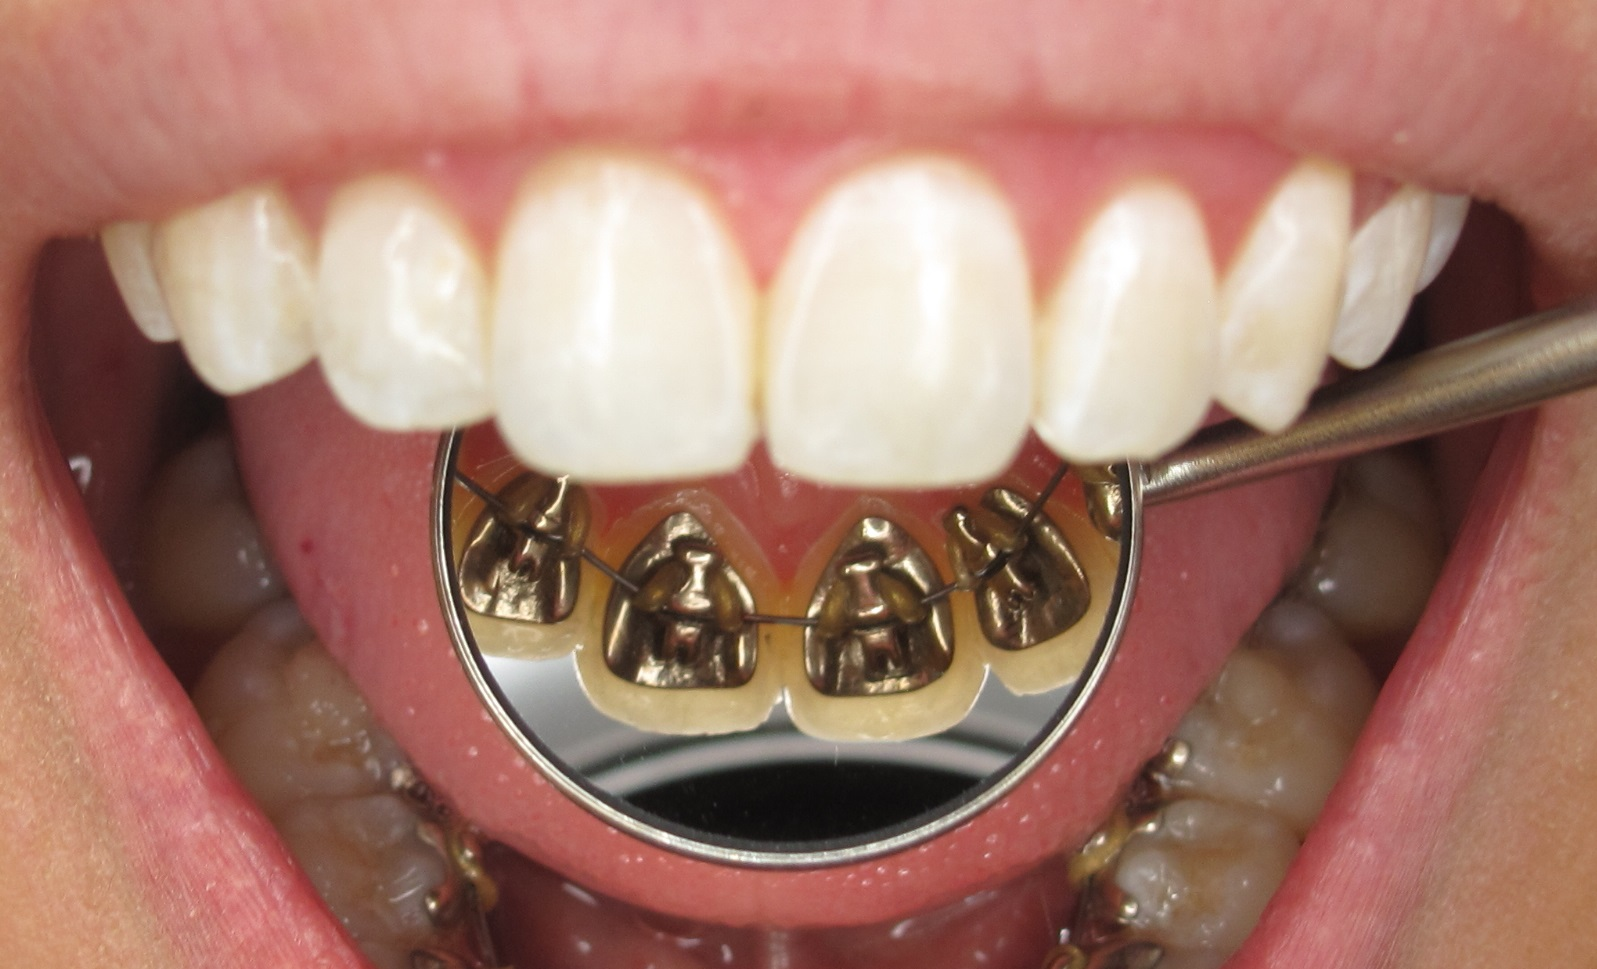 Lingual Braces Look.jpg